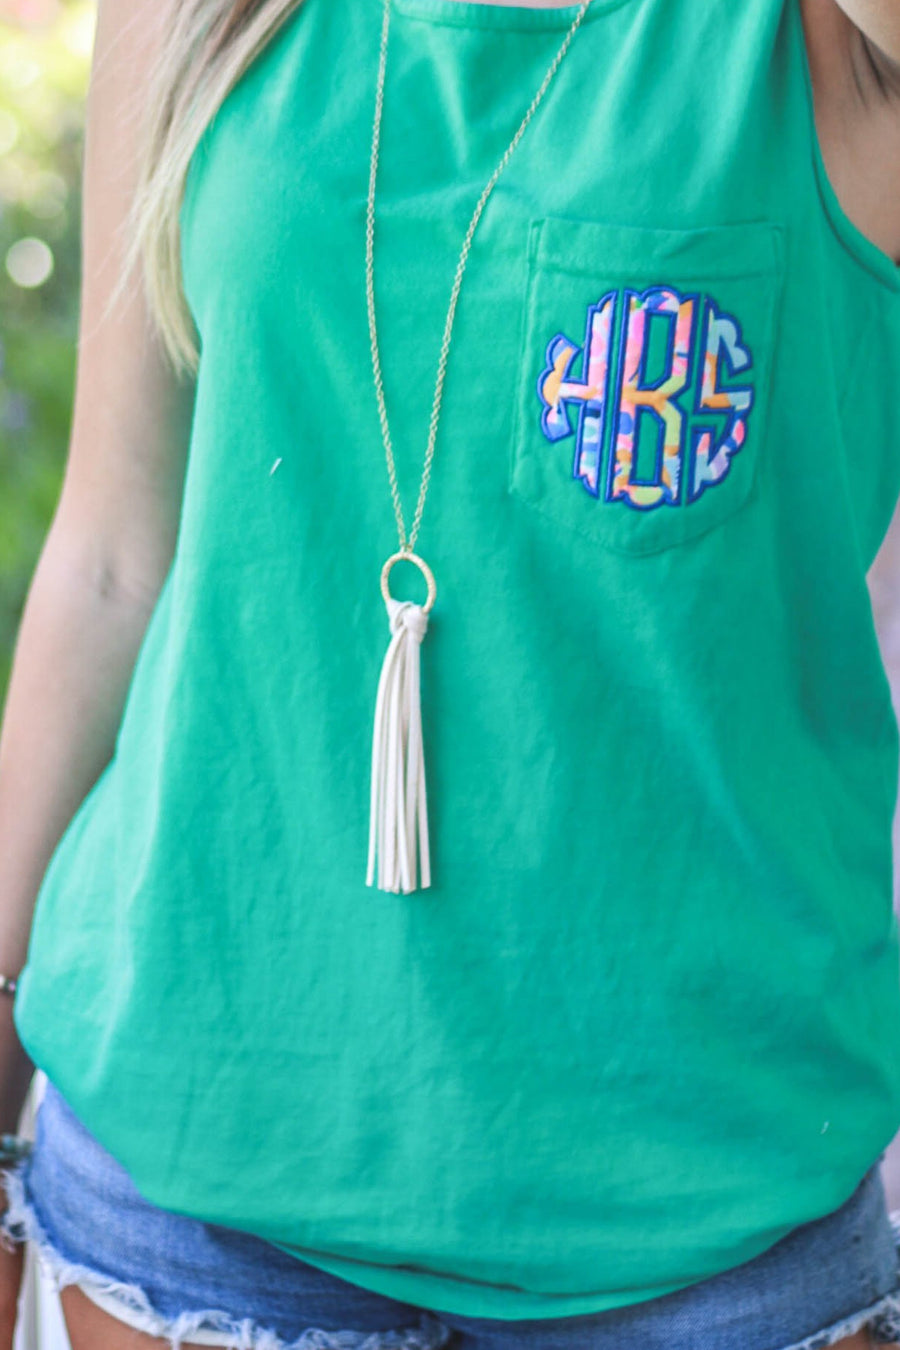 Amie Tassel Necklace 34 Inch, Accessories, The Royal Standard, - Sunny and Southern,